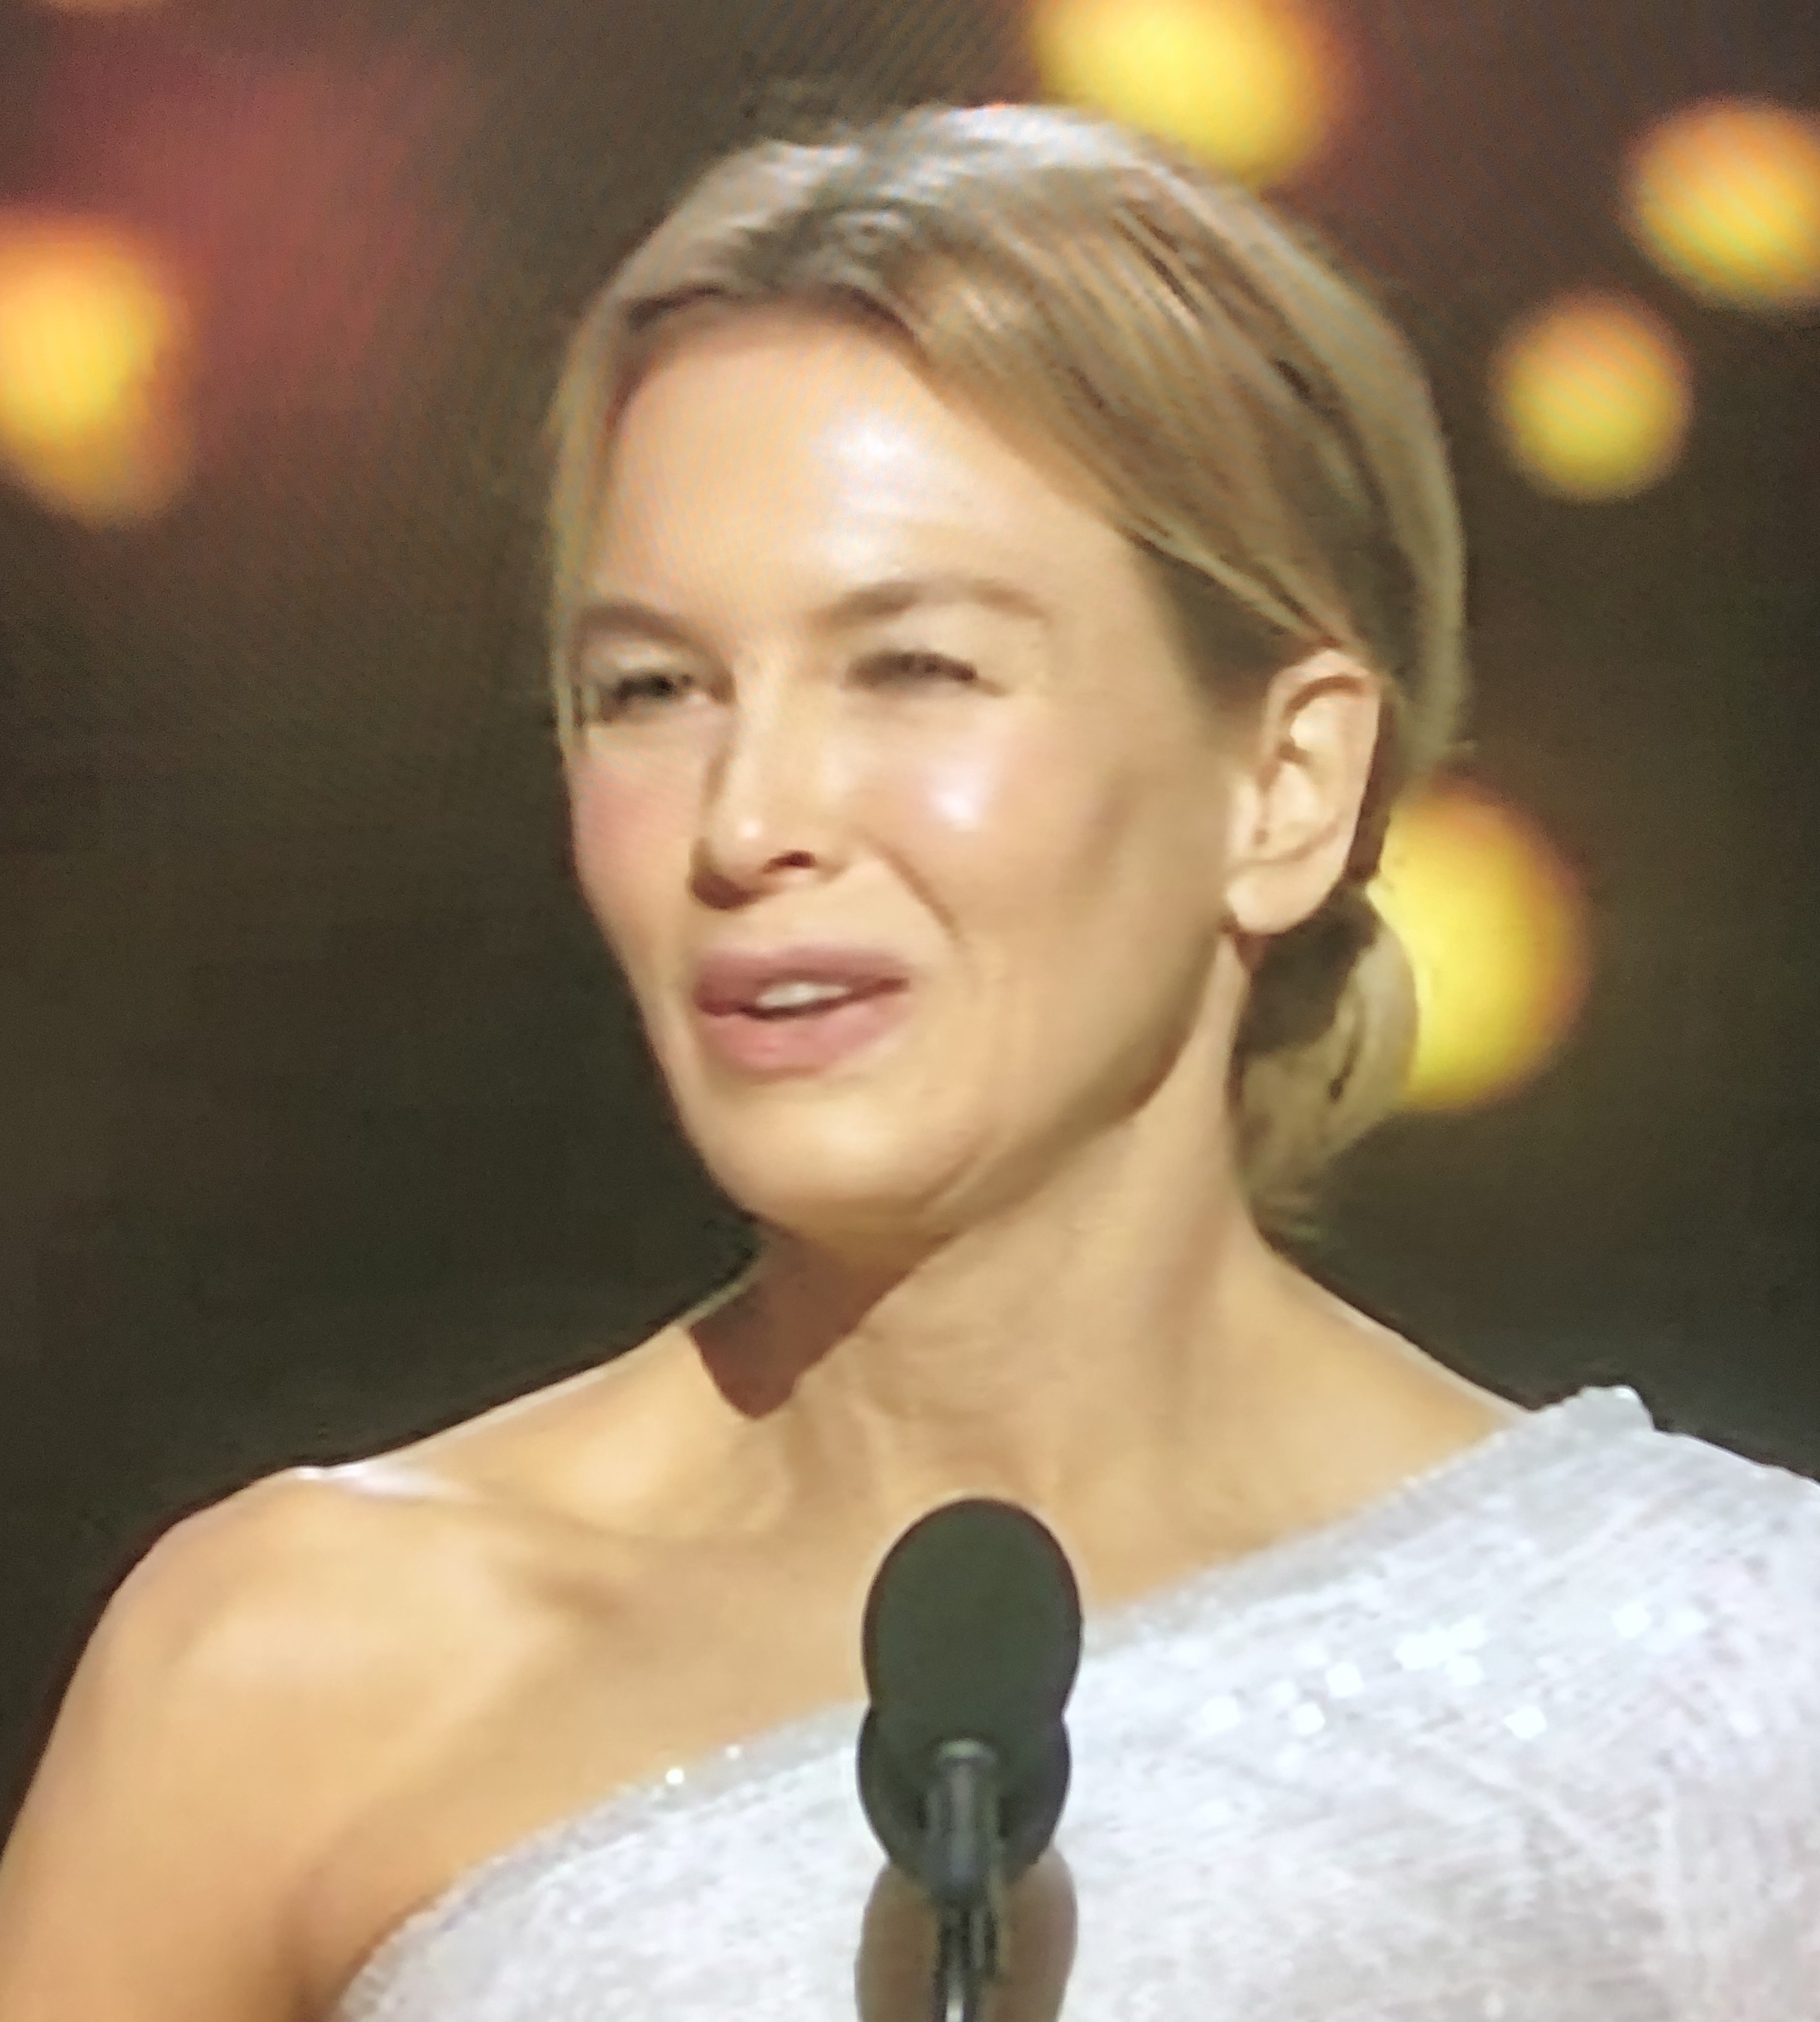 Renee Zellweger won the best actress for playing Judy Garland in Judy